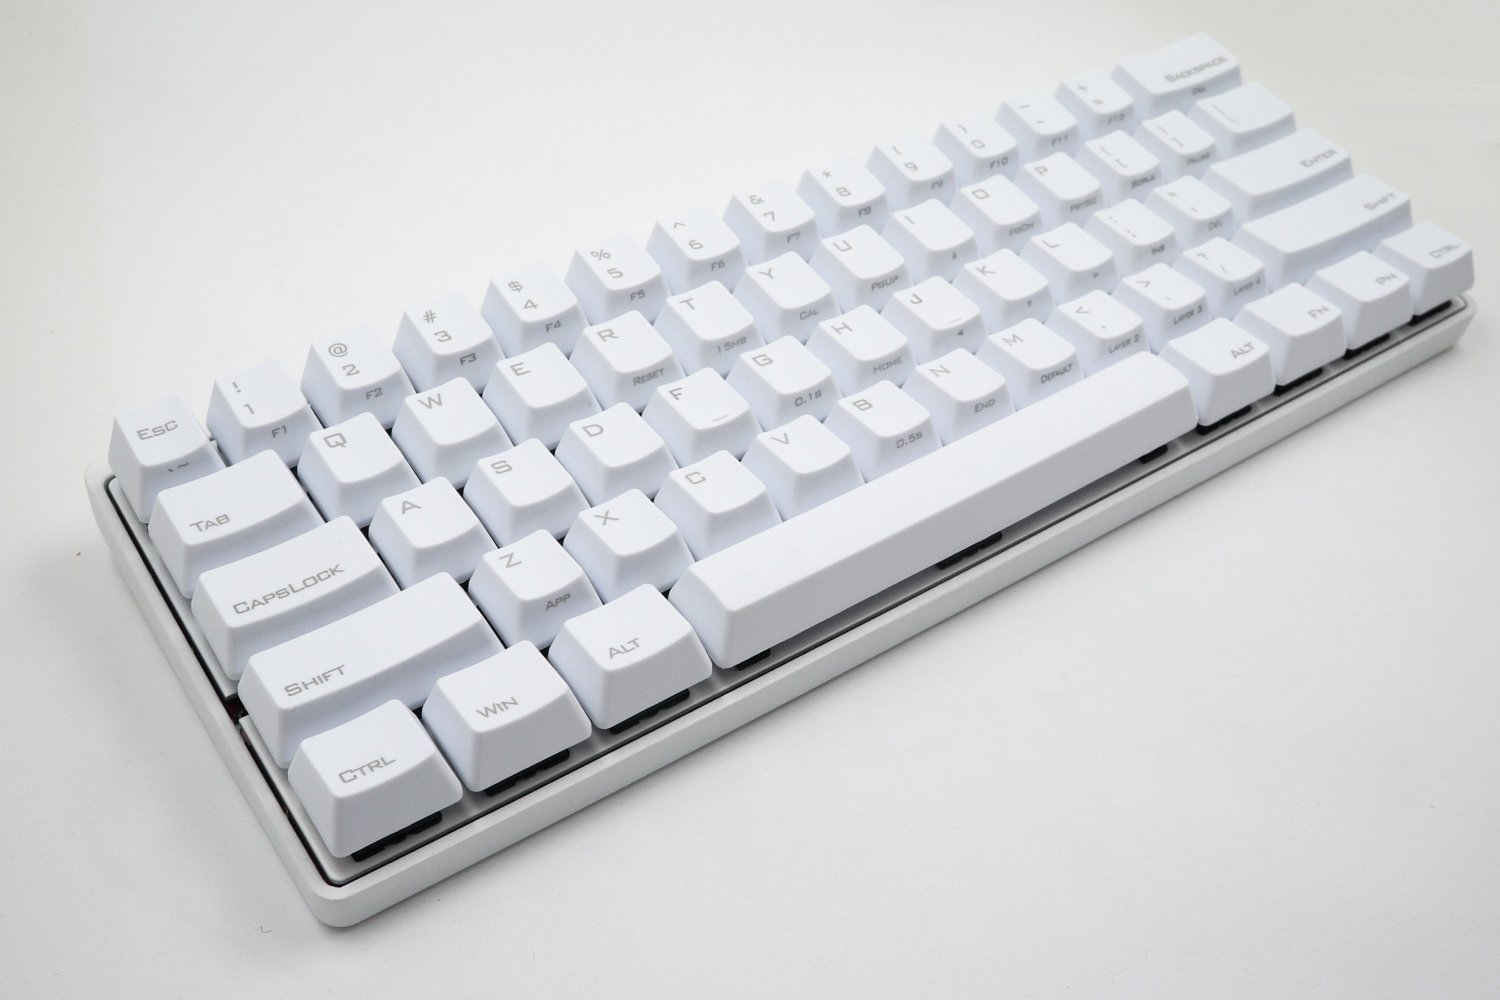 Amazon mechanical keyboard - Amazon Com Mechanical Keyboard Kbc Poker 3 White Case Pbt Keycaps Cherry Mx Blue Metal Casing Computers Accessories